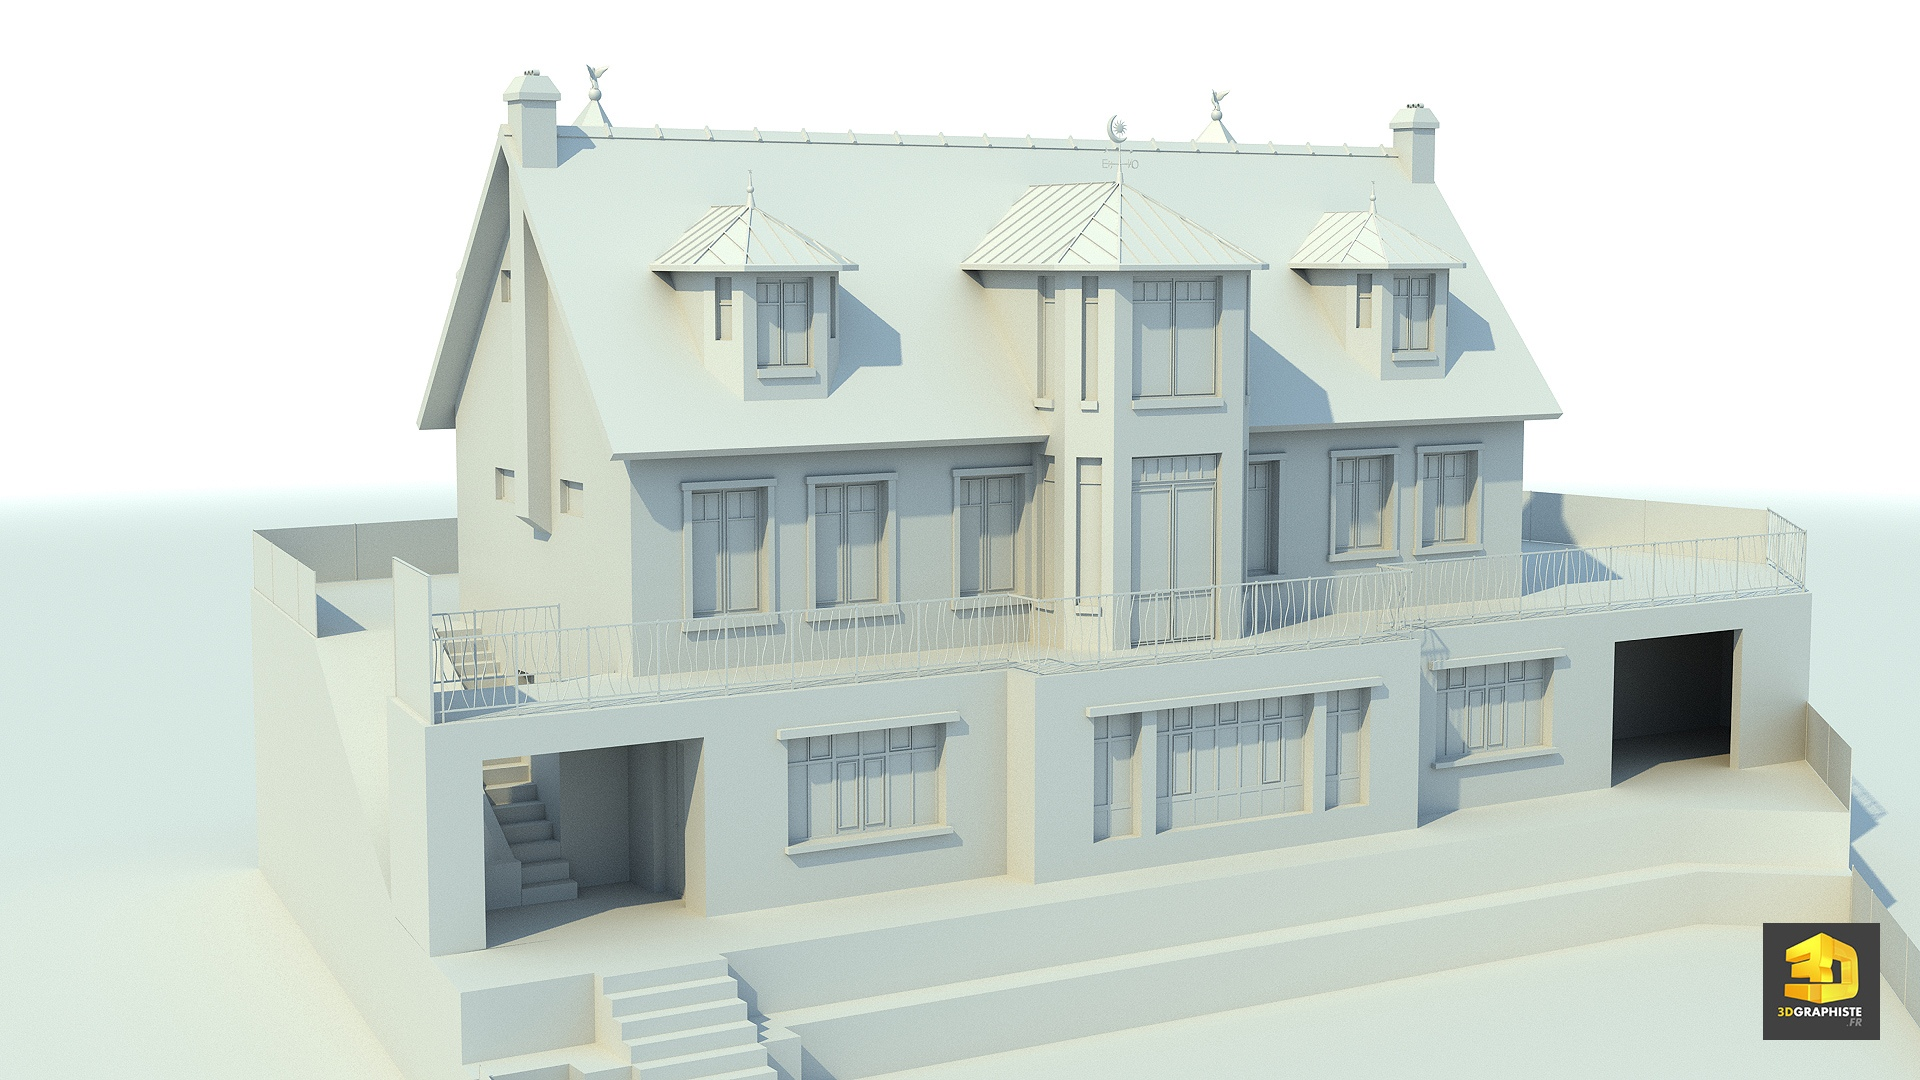 Mod lisation 3d pour l 39 architecture 3dgraphiste fr for L architecture